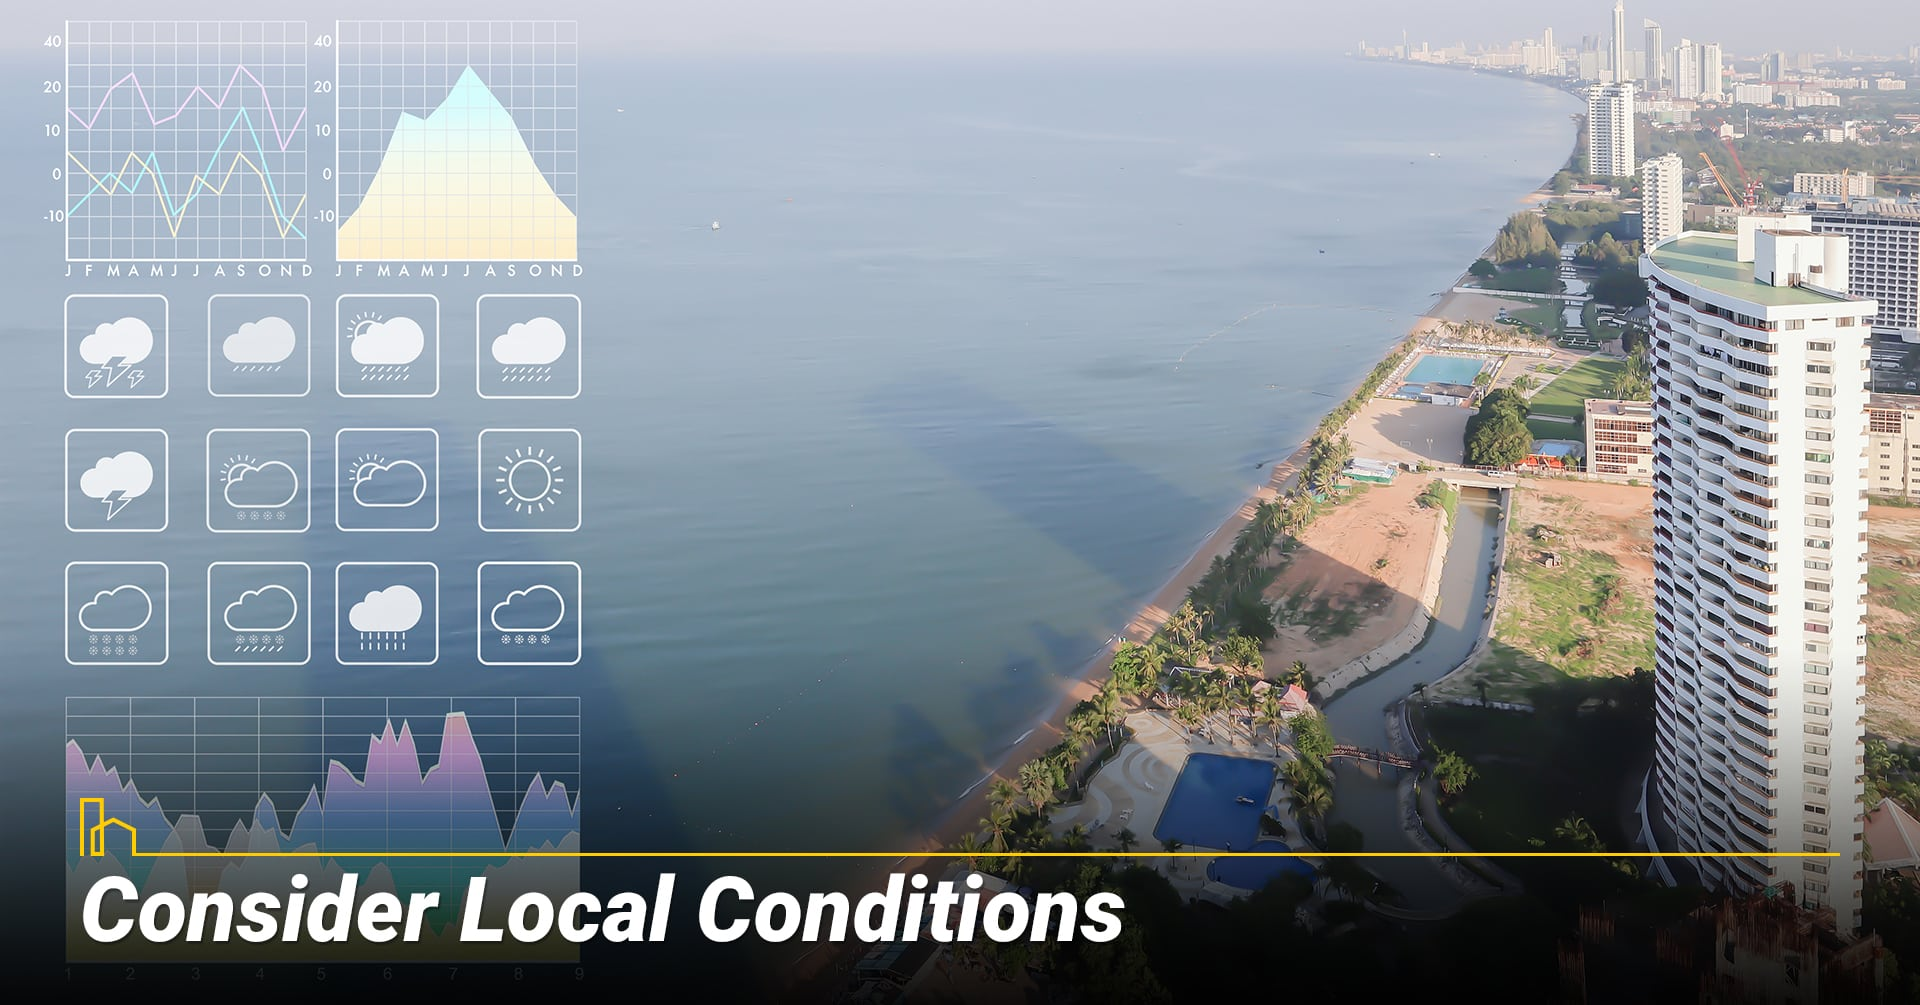 Consider Local Conditions, take a look at local weather